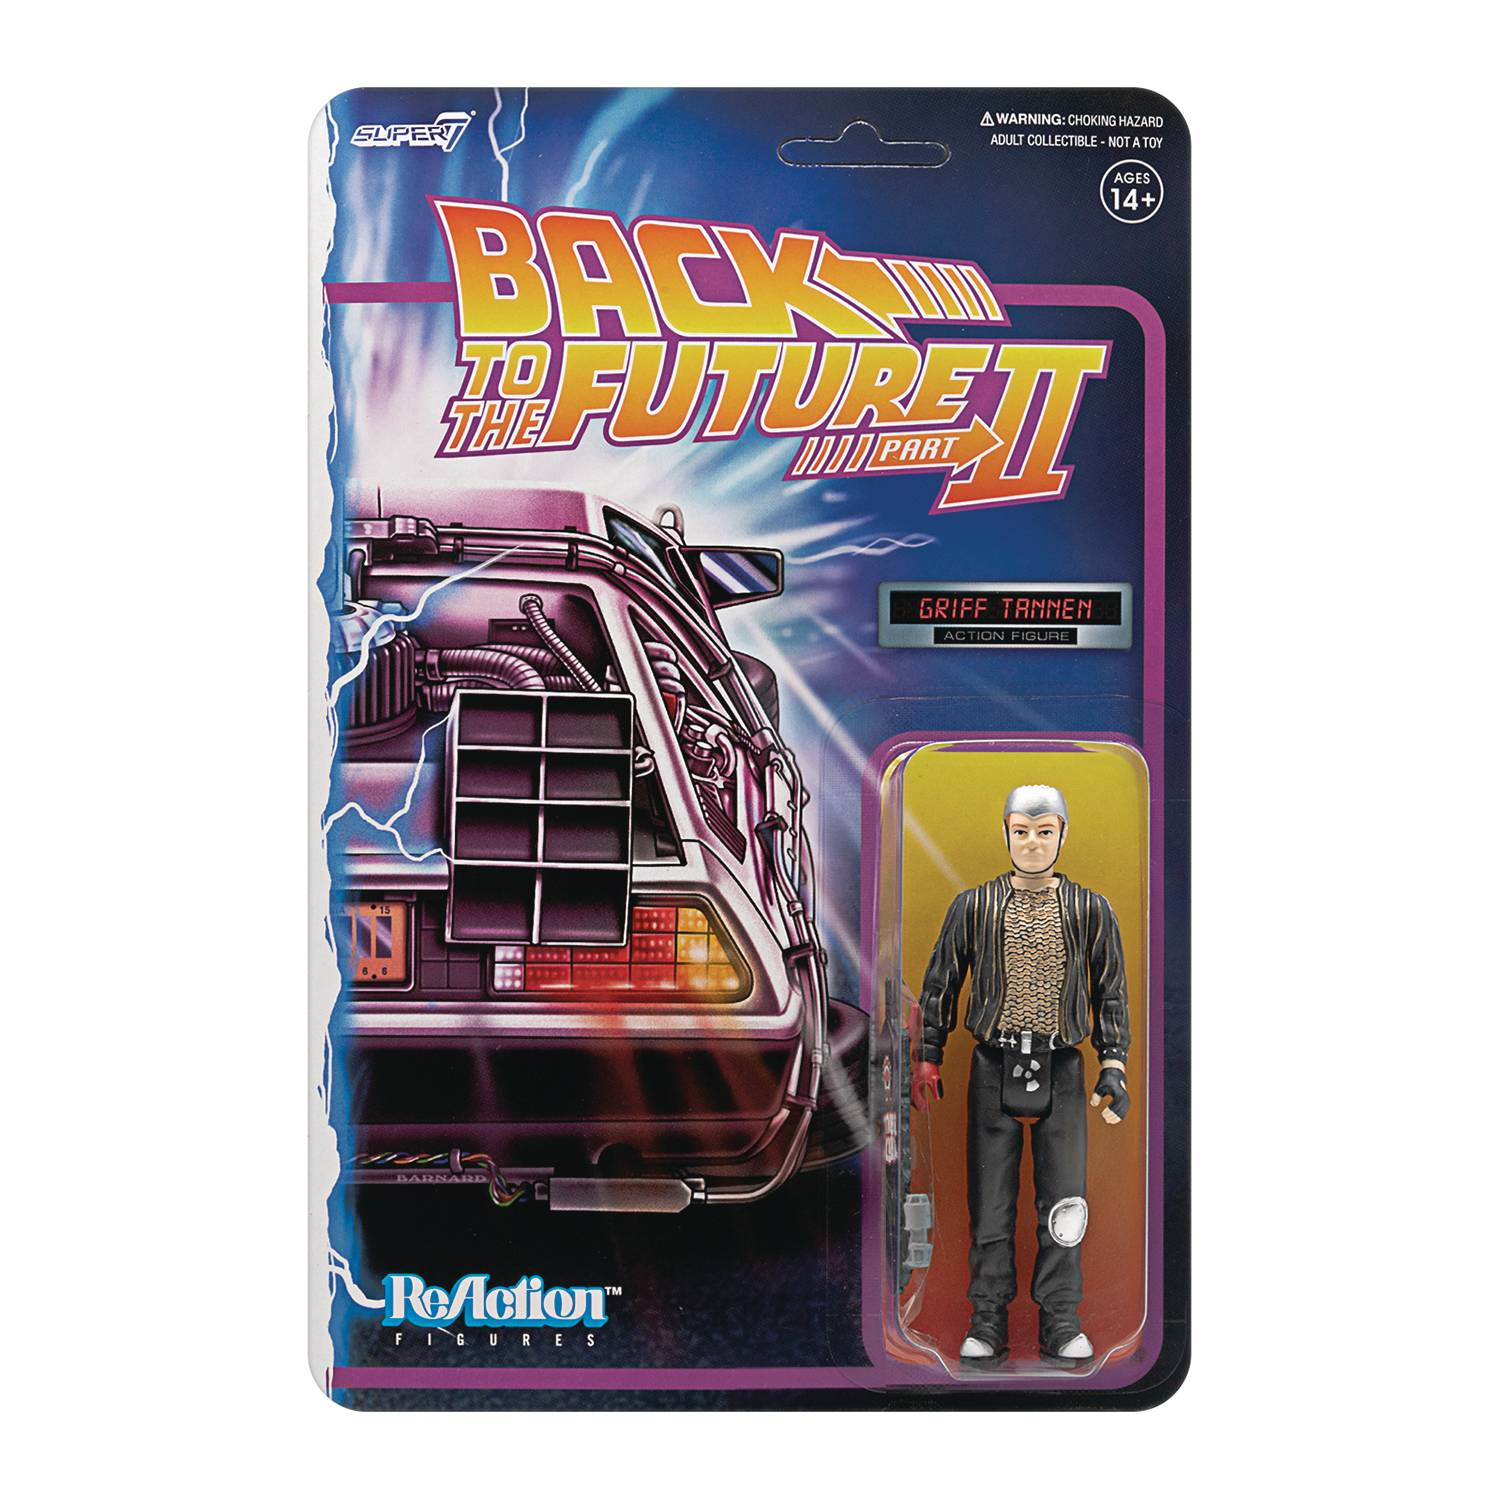 BACK TO THE FUTURE 2 GRIFF TANNEN REACTION FIGURE